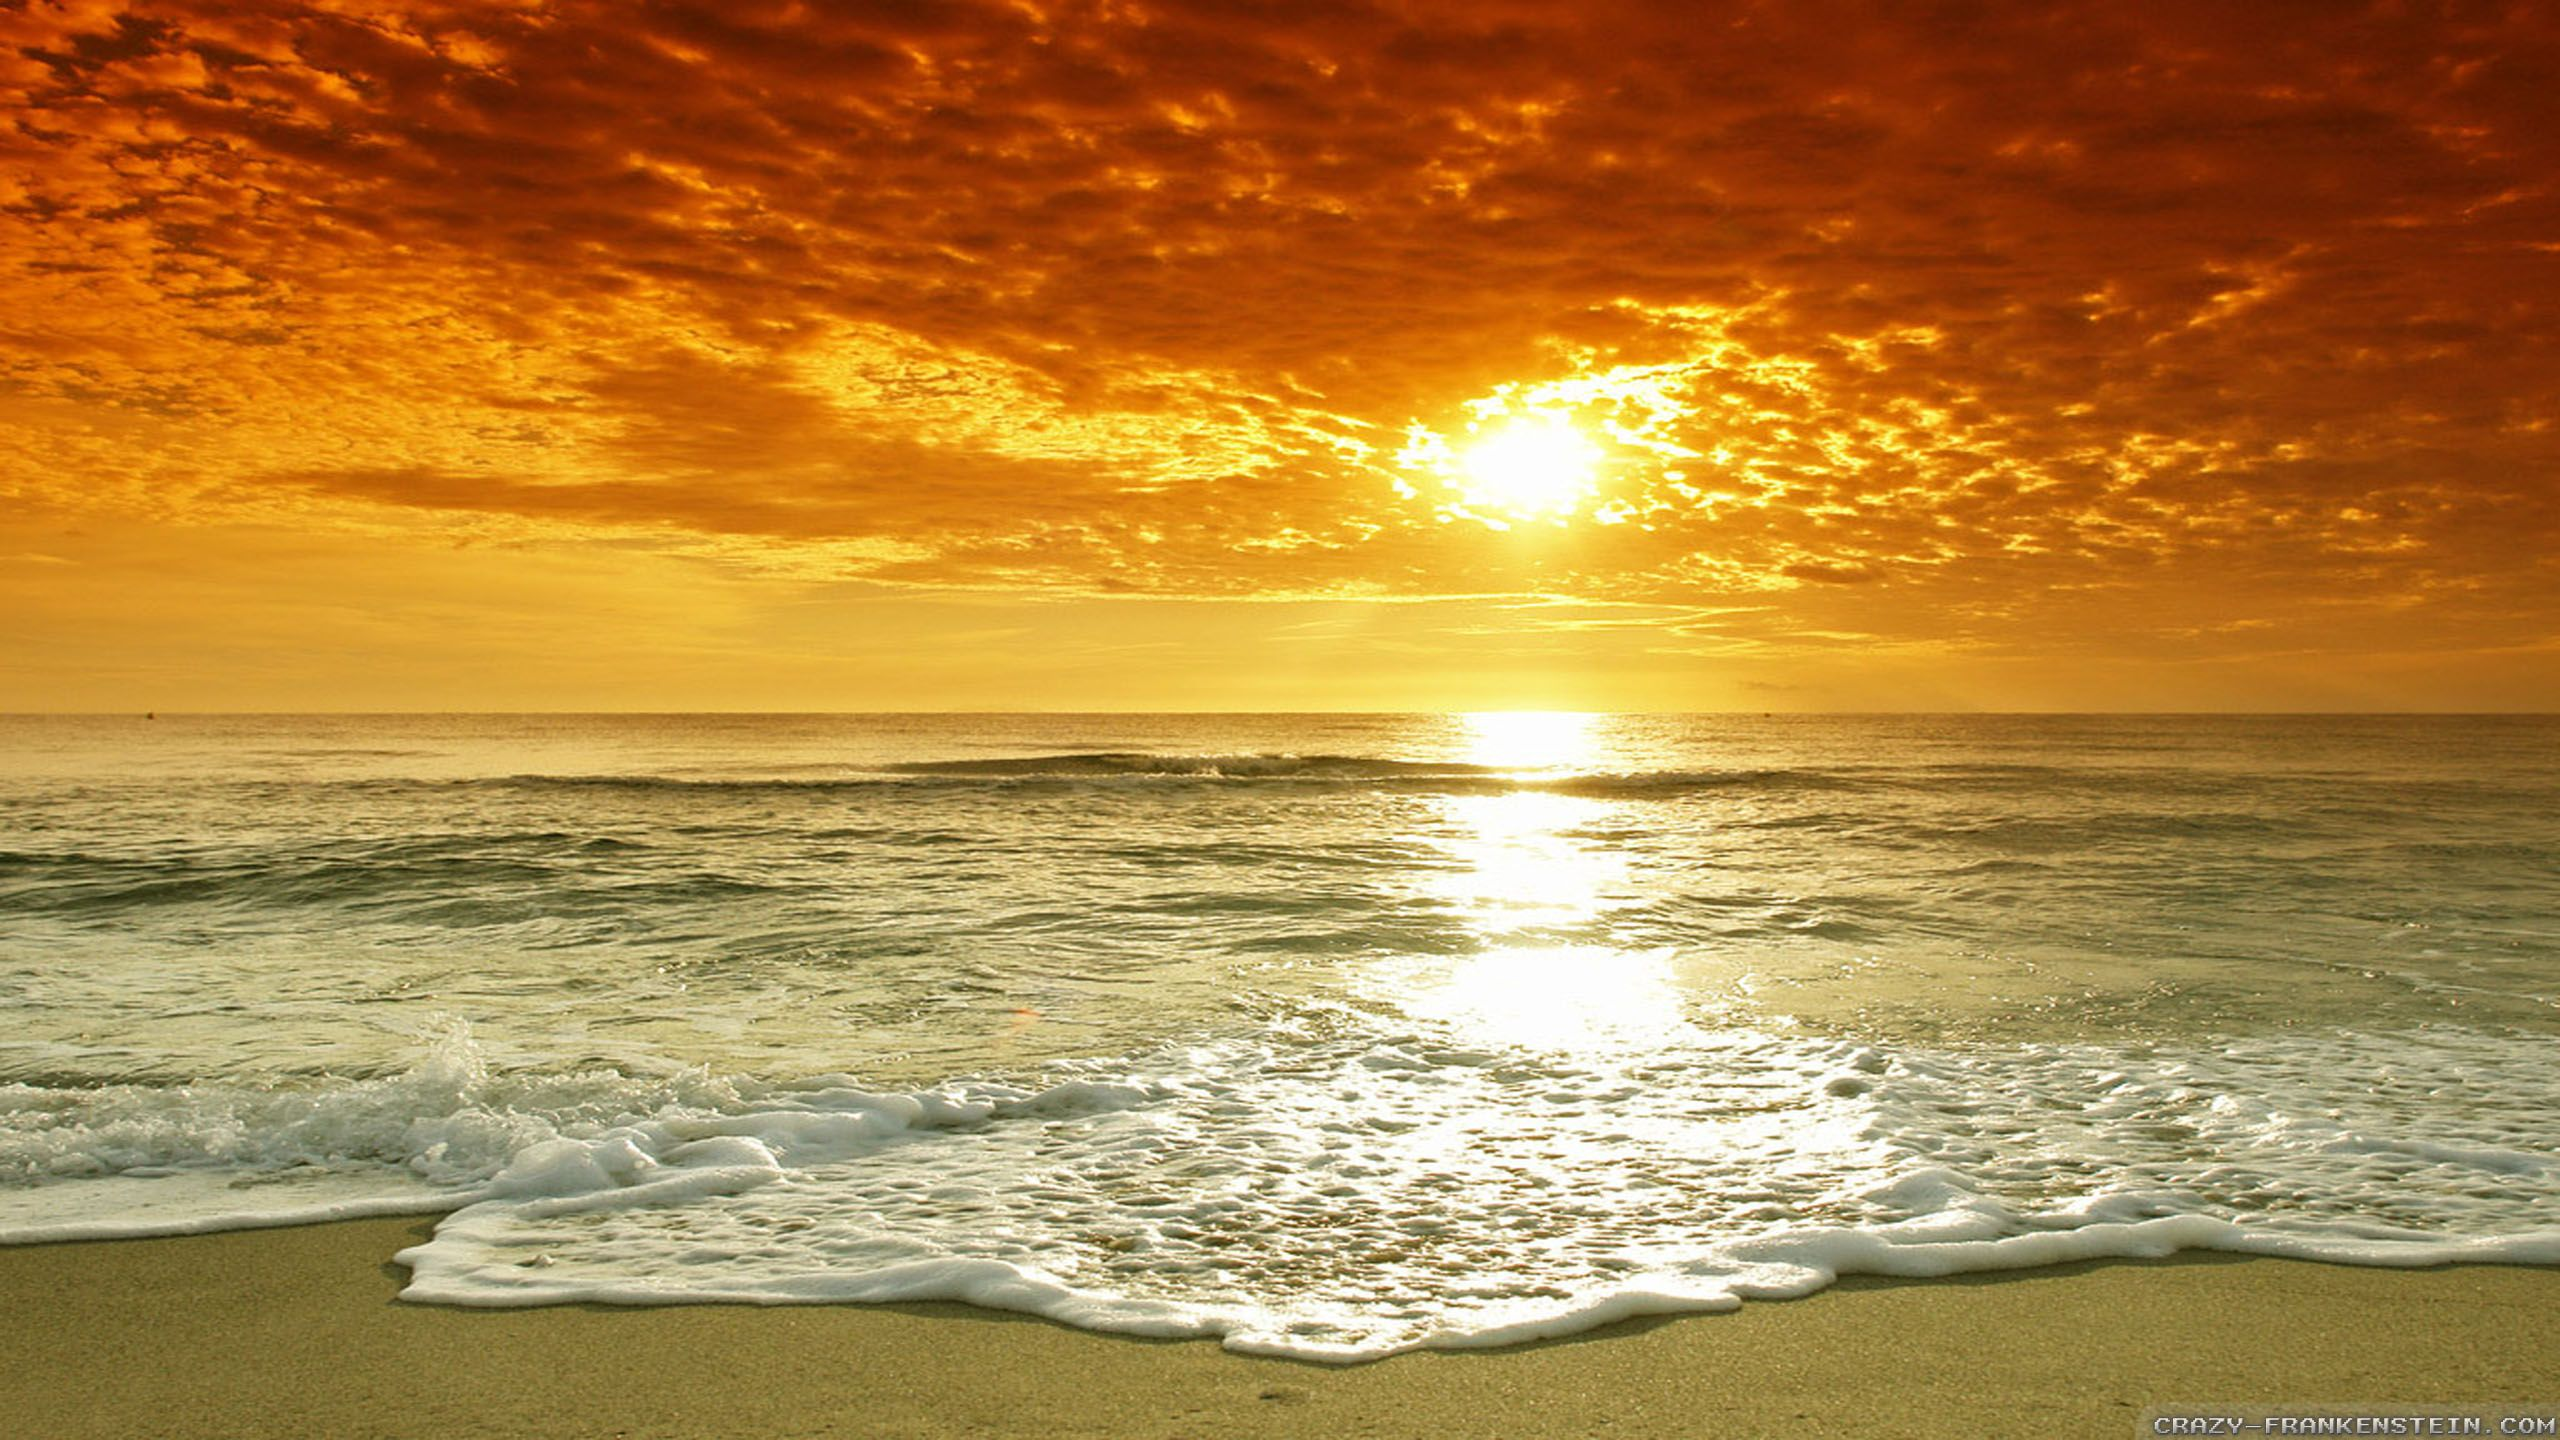 Sunset With Sea Wave Tap To See More Breathtaking Beach: Summer Beach Images - Google Search